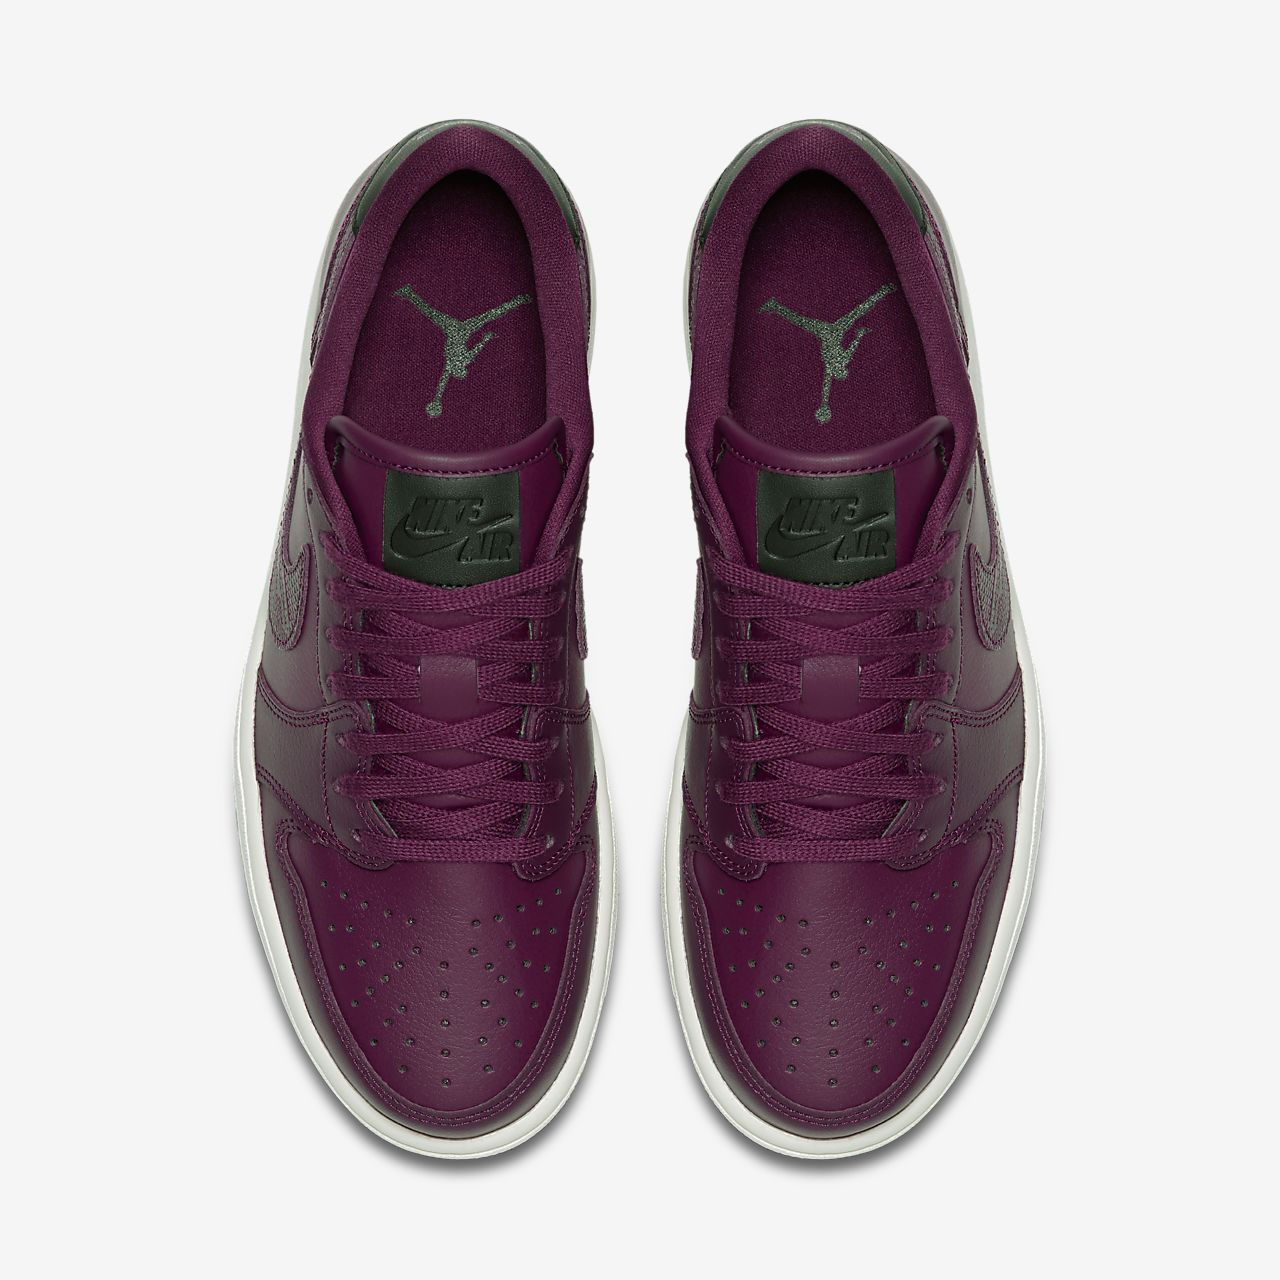 ecd314139db2 Air Jordan 1 Retro Low OG Women s Shoe. Nike.com LU